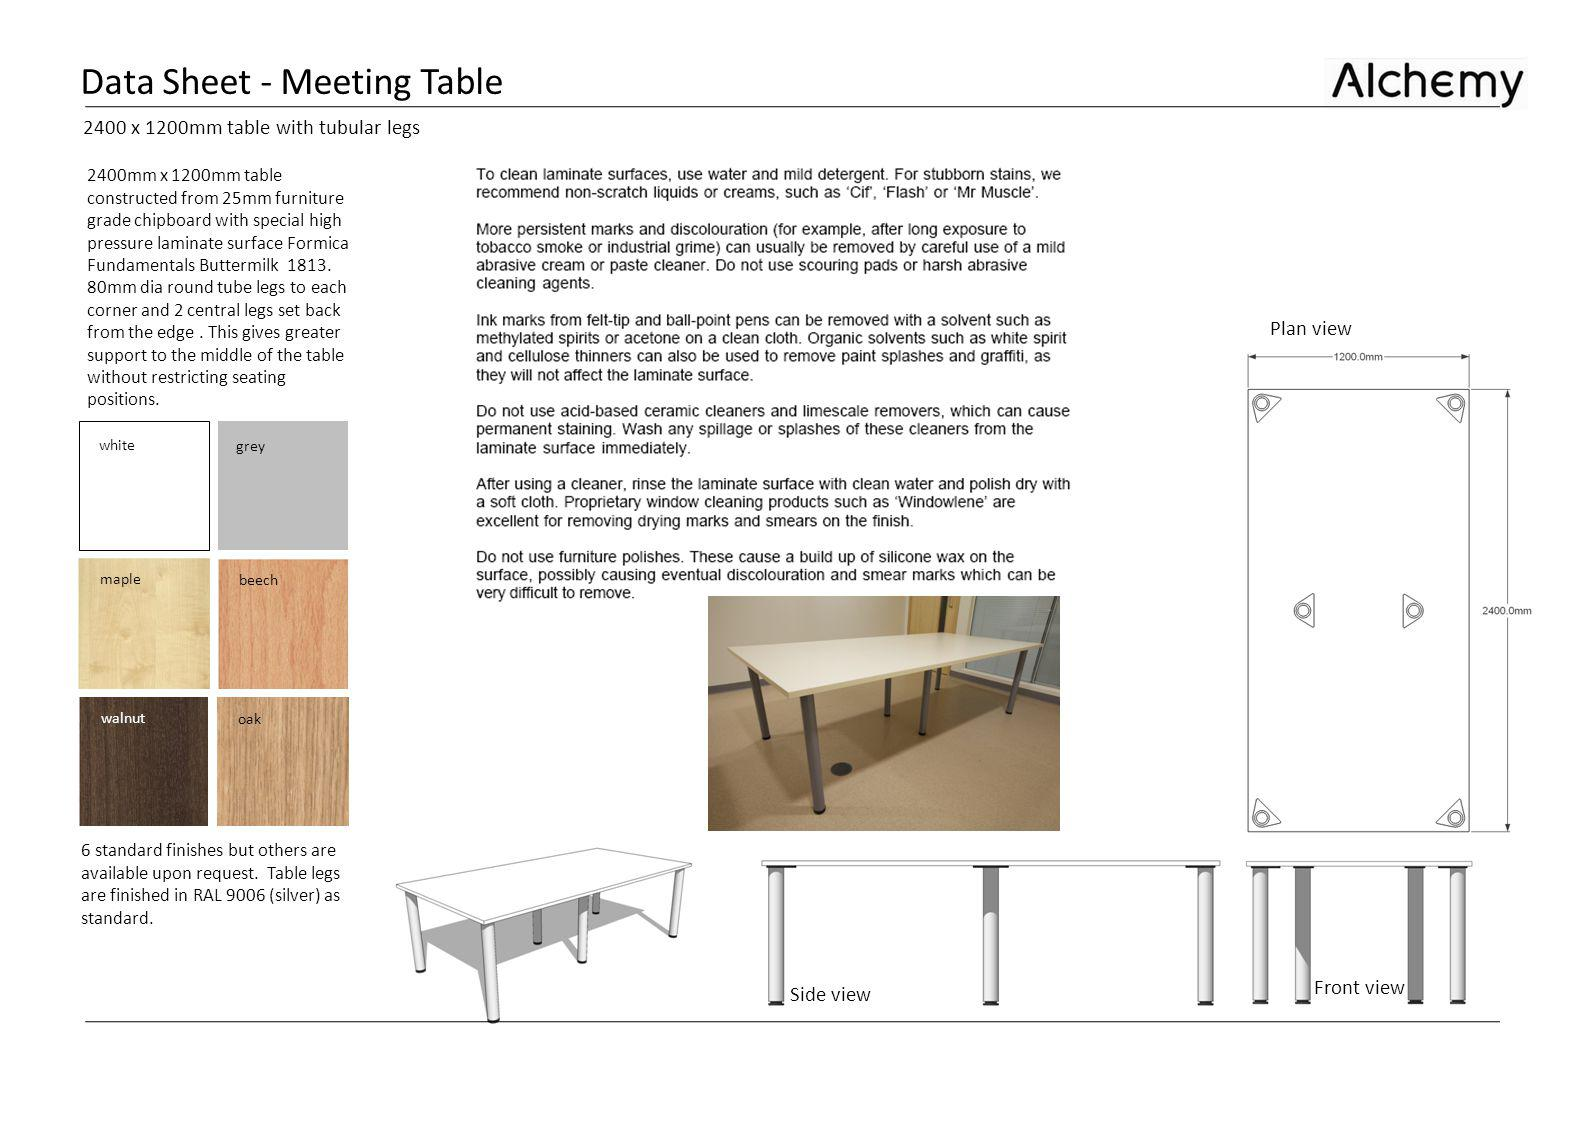 Data Sheet - Meeting Table 2400mm x 1200mm table constructed from 25mm furniture grade chipboard with special high pressure laminate surface Formica F